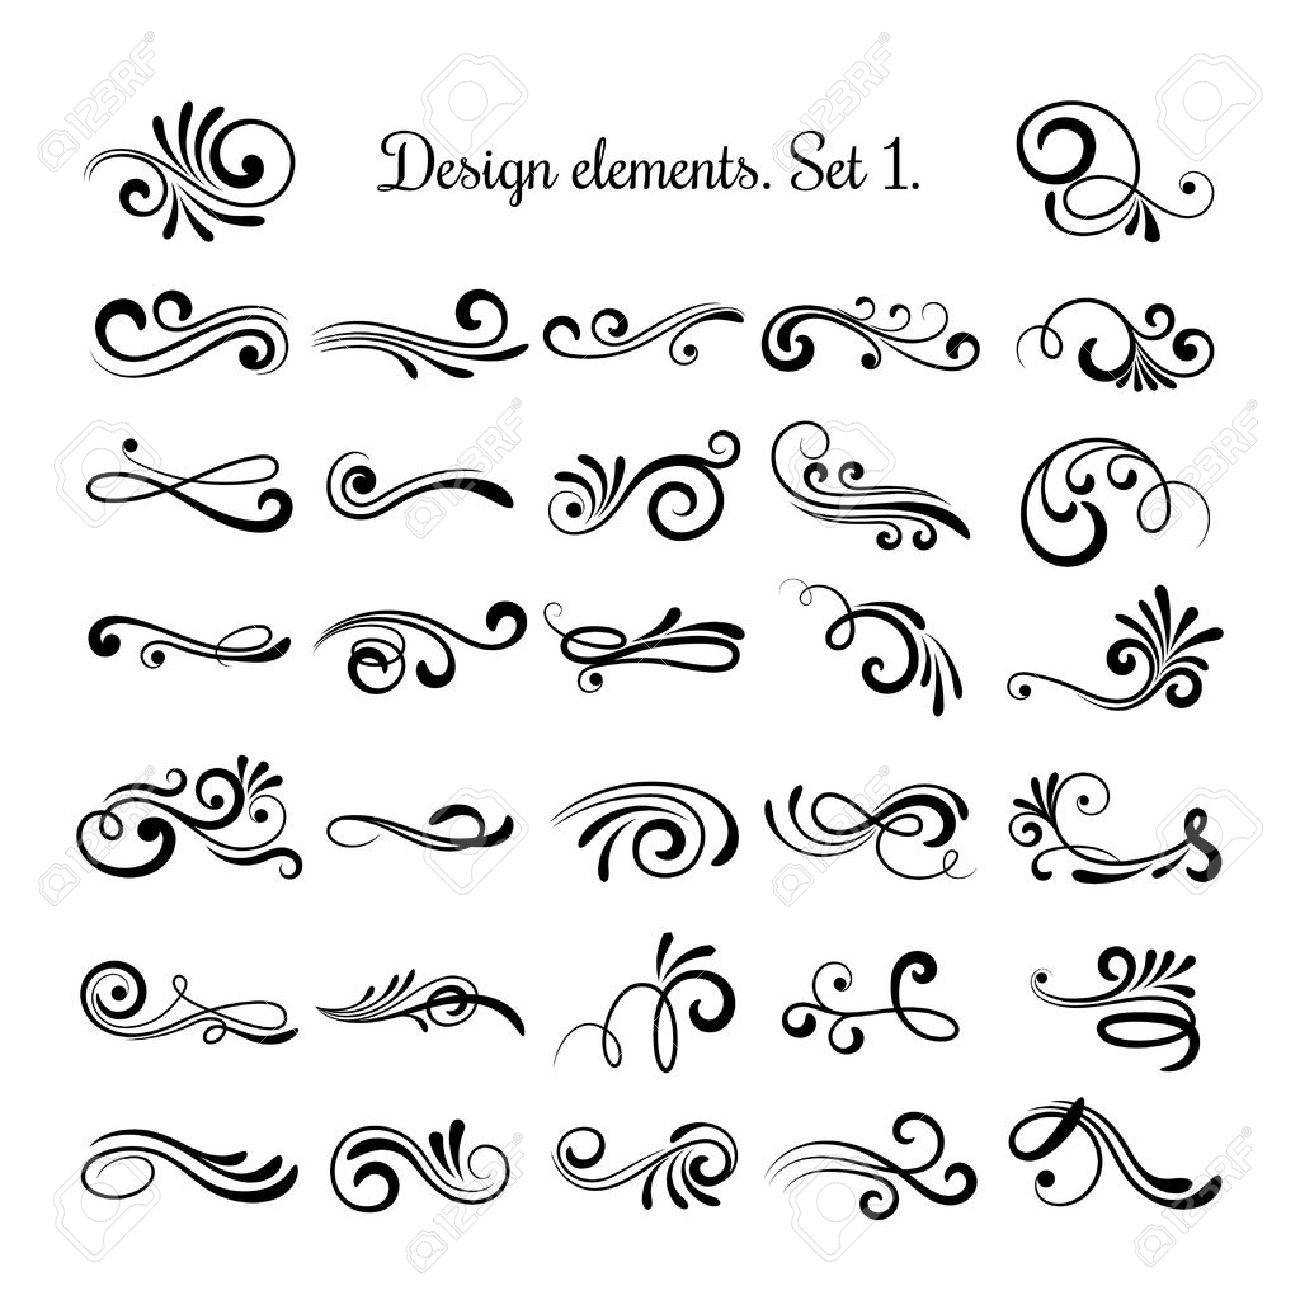 Swirly line curl patterns isolated on white background vector swirly line curl patterns isolated on white background vector flourish vintage embellishments for greeting cards stopboris Choice Image